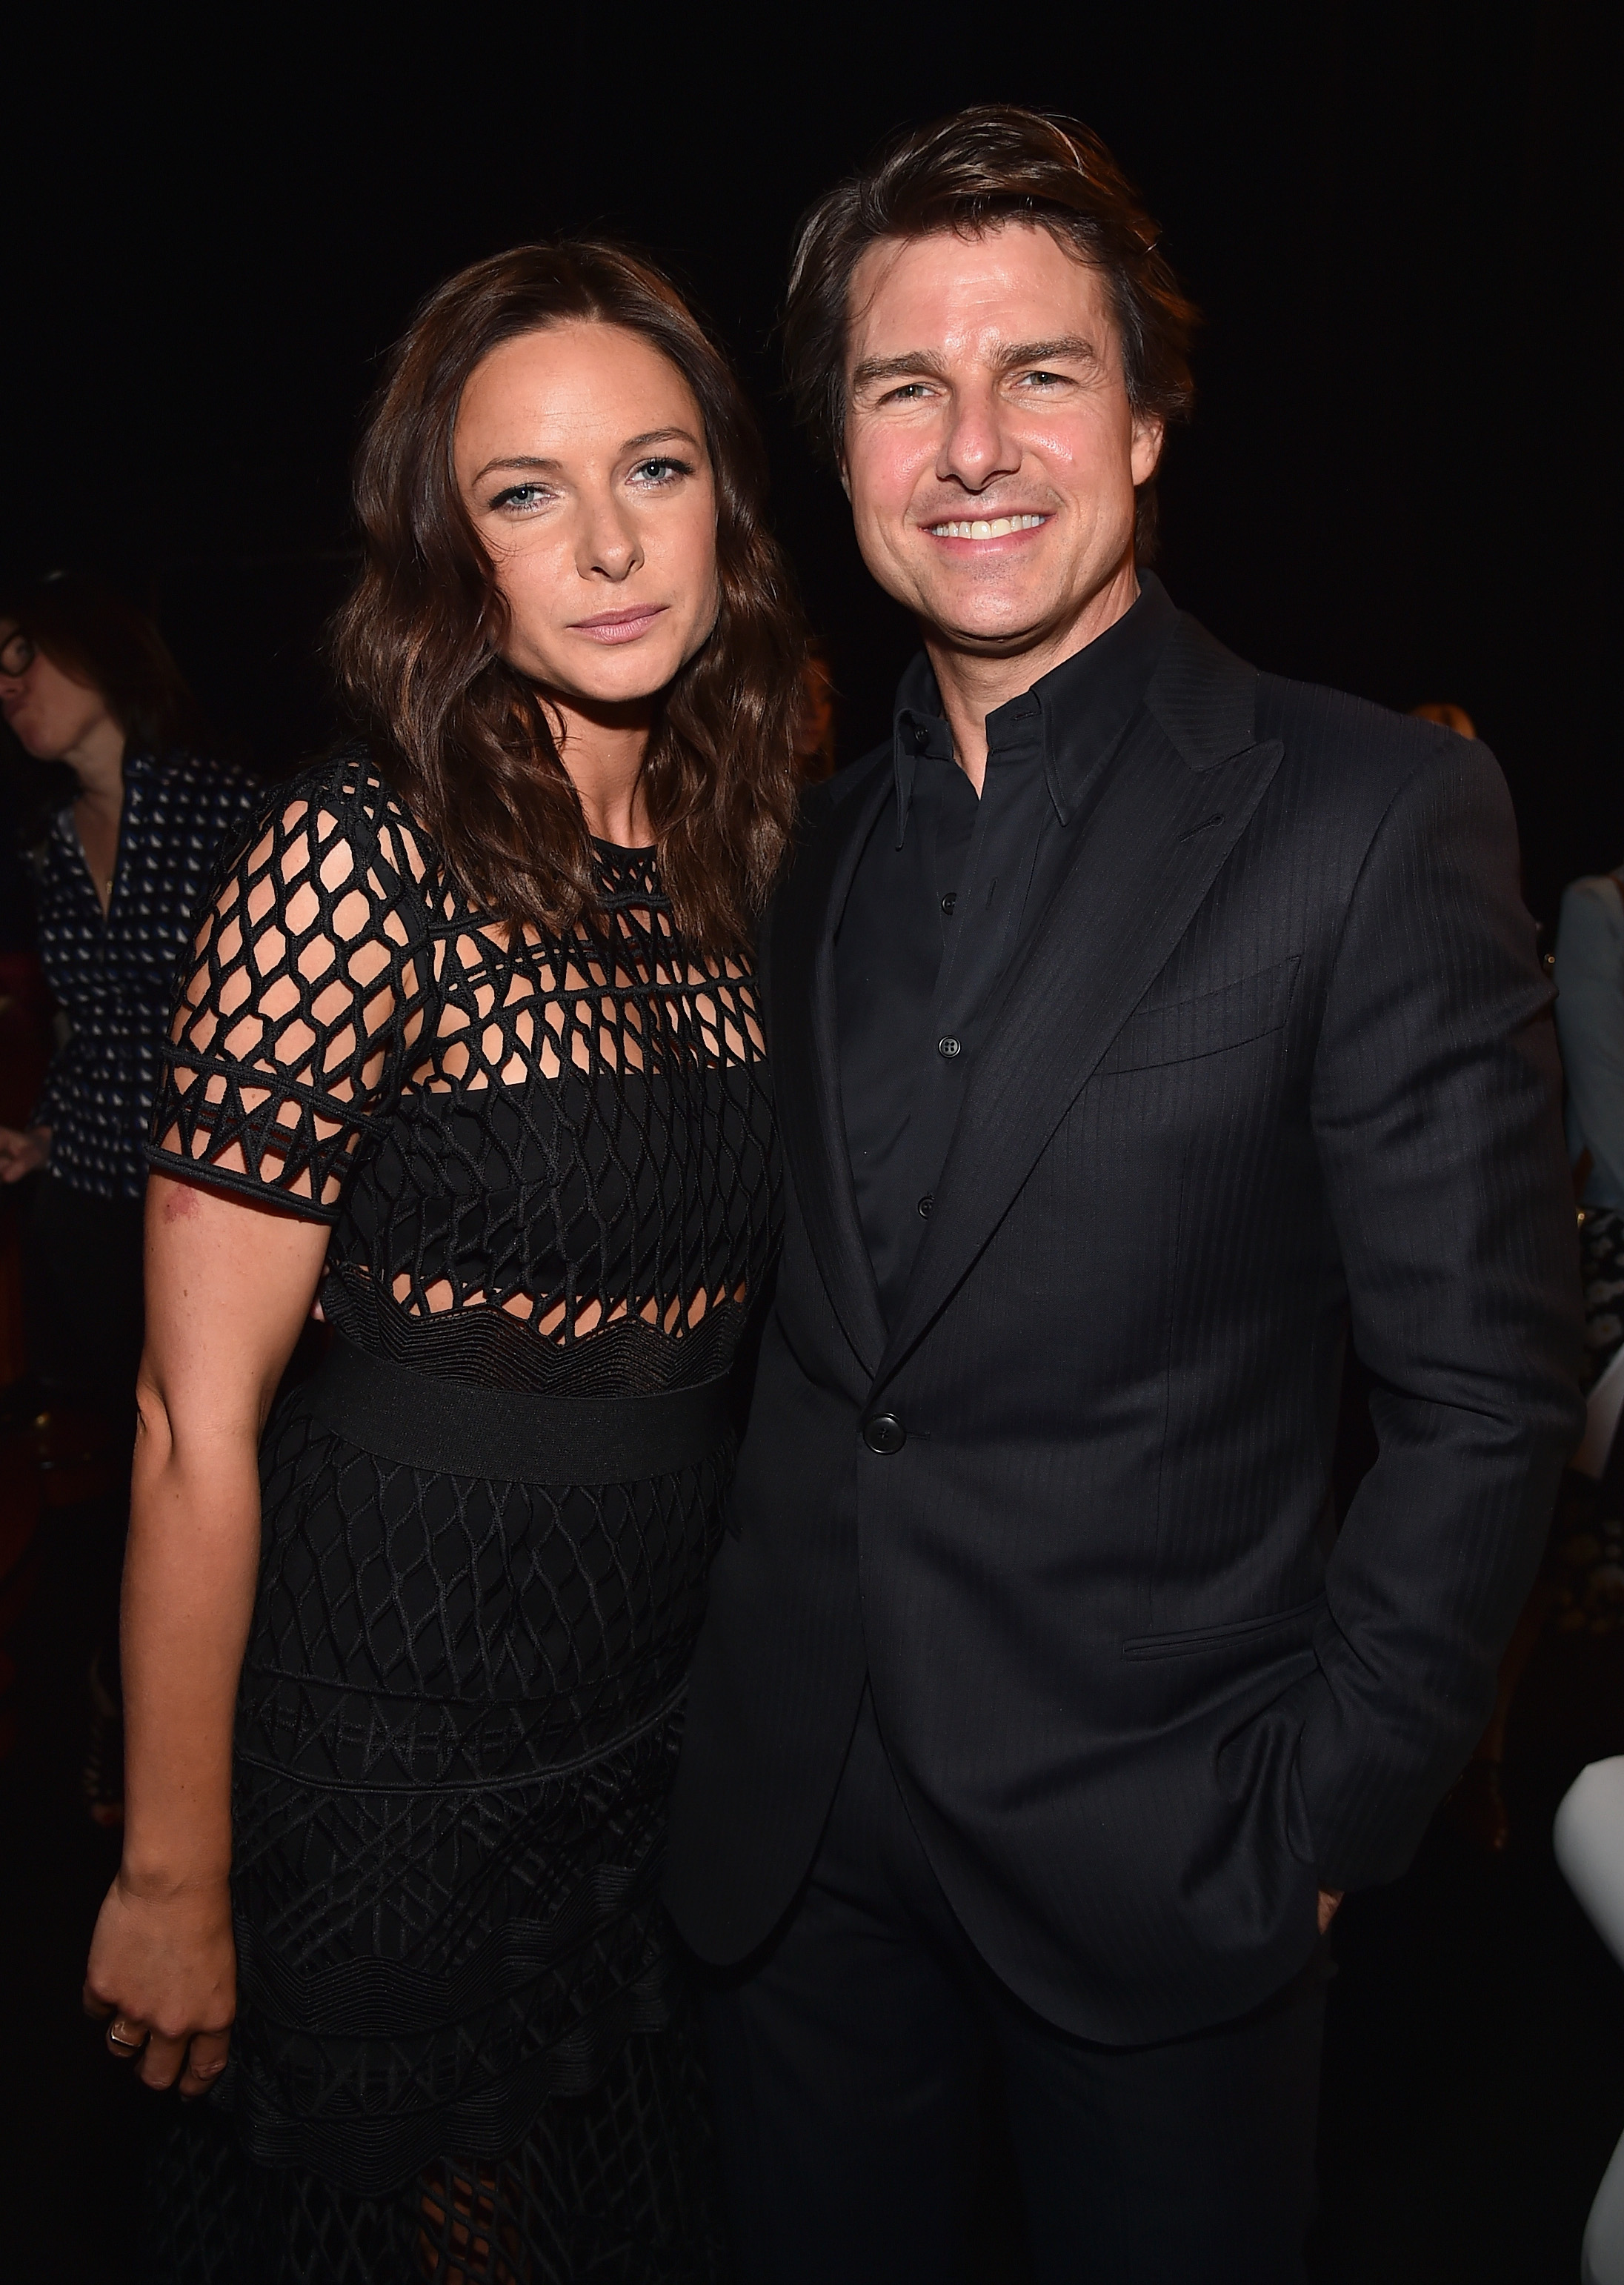 Tom Cruise Gushes About 'Mission Impossible' Co-Star ... Tom Cruise Imdb